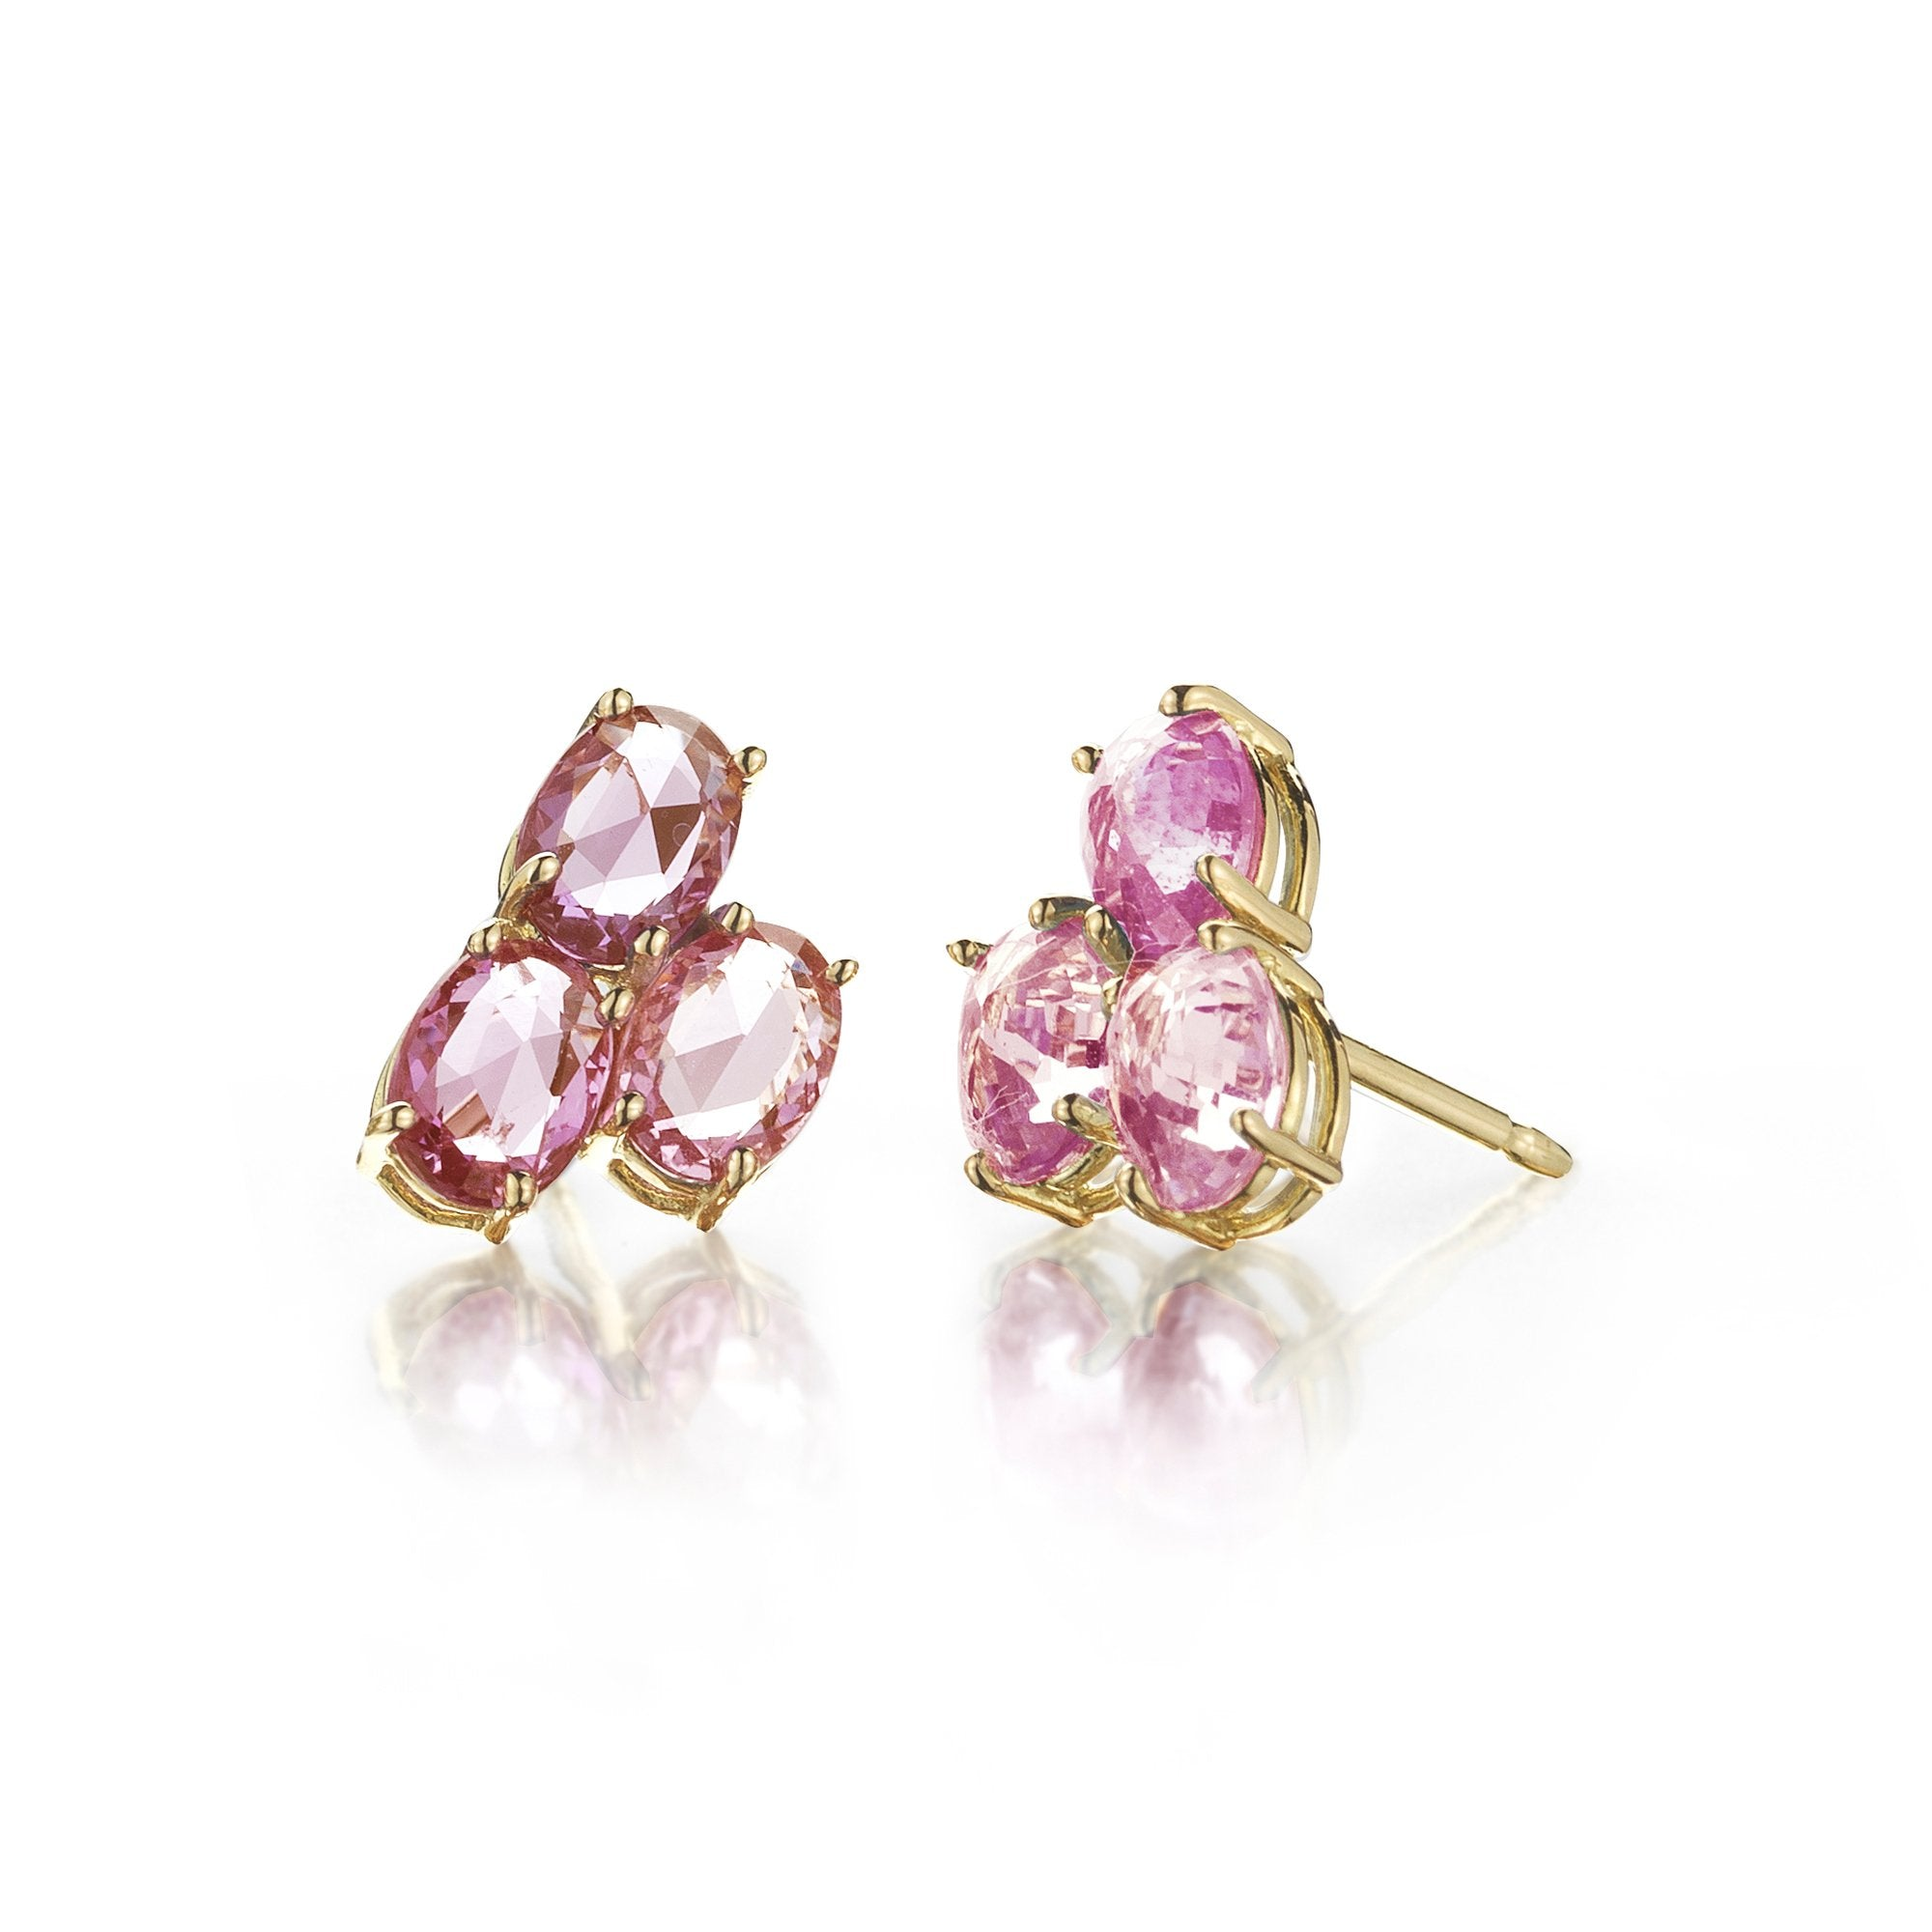 yellow champagne diamond tiny studs earrings pt diamonds tourmaline rosette gold yg products pink stud